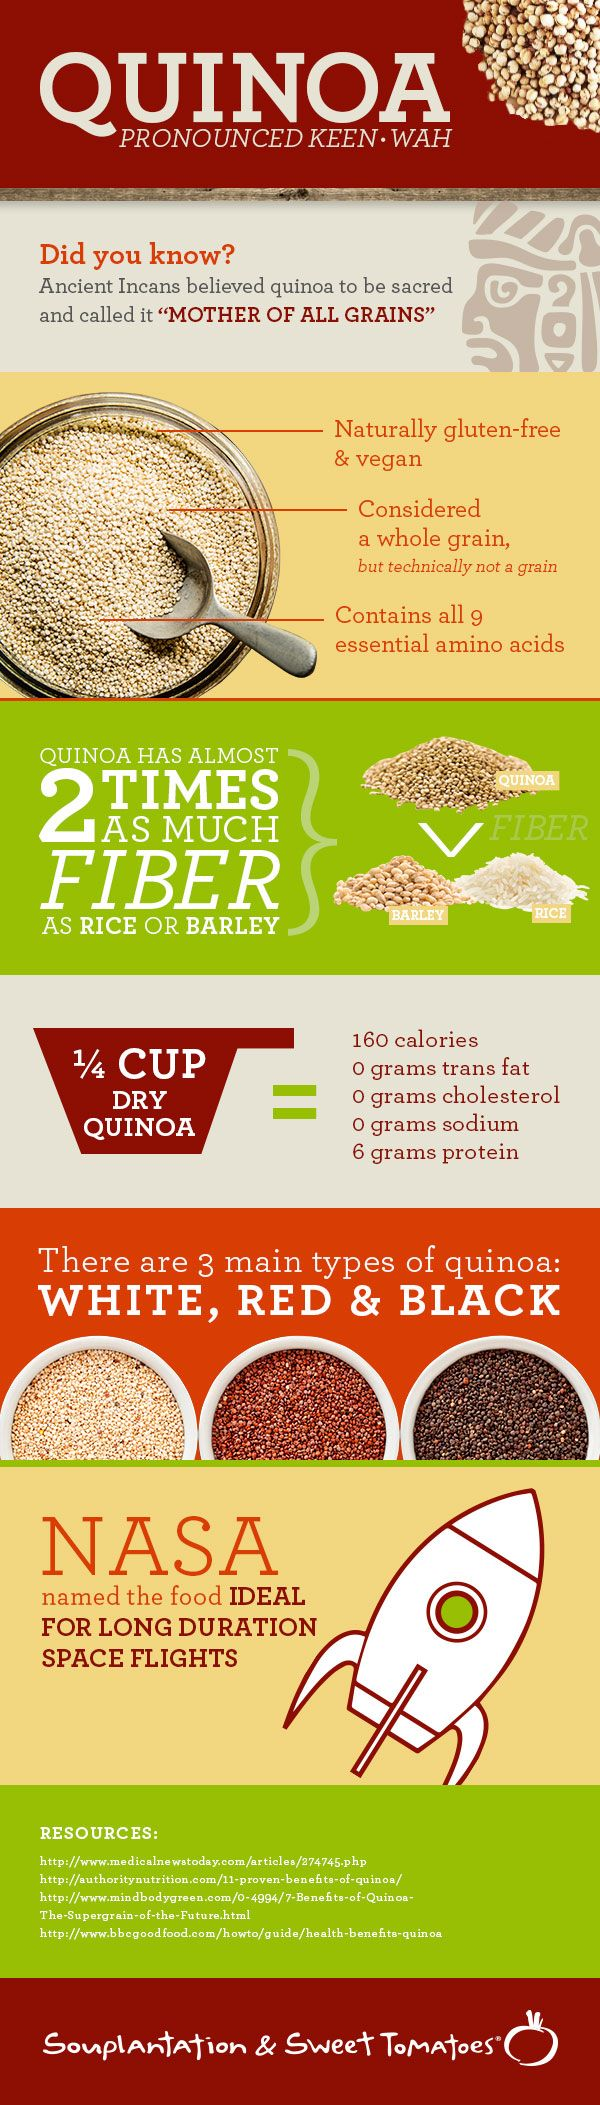 How many calories in quinoa?